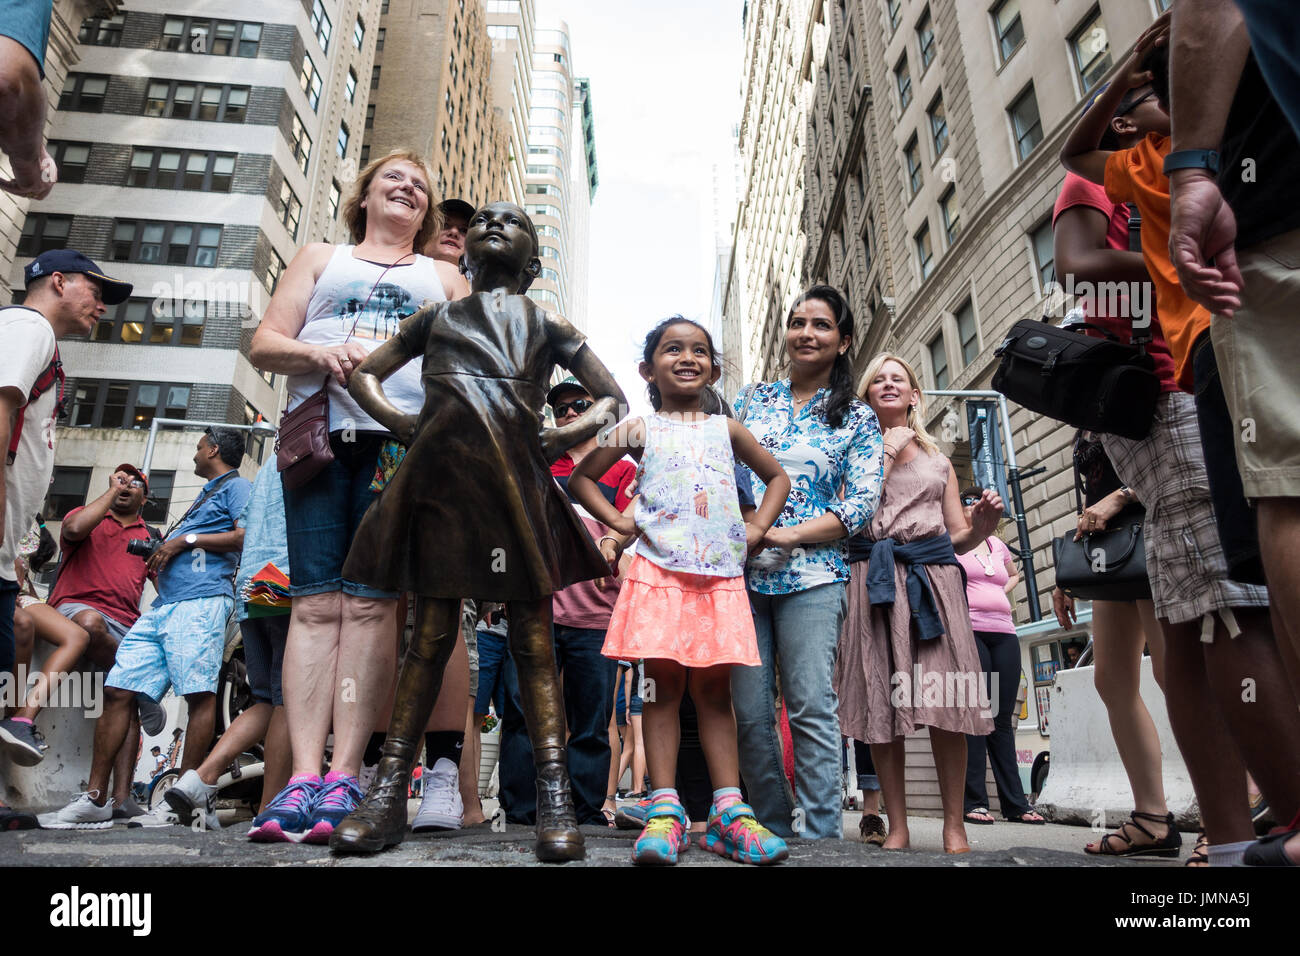 Young girl, with her family, posing at the front of the Fearless Girl bronze sculpture on Wall Street, NY - Stock Image